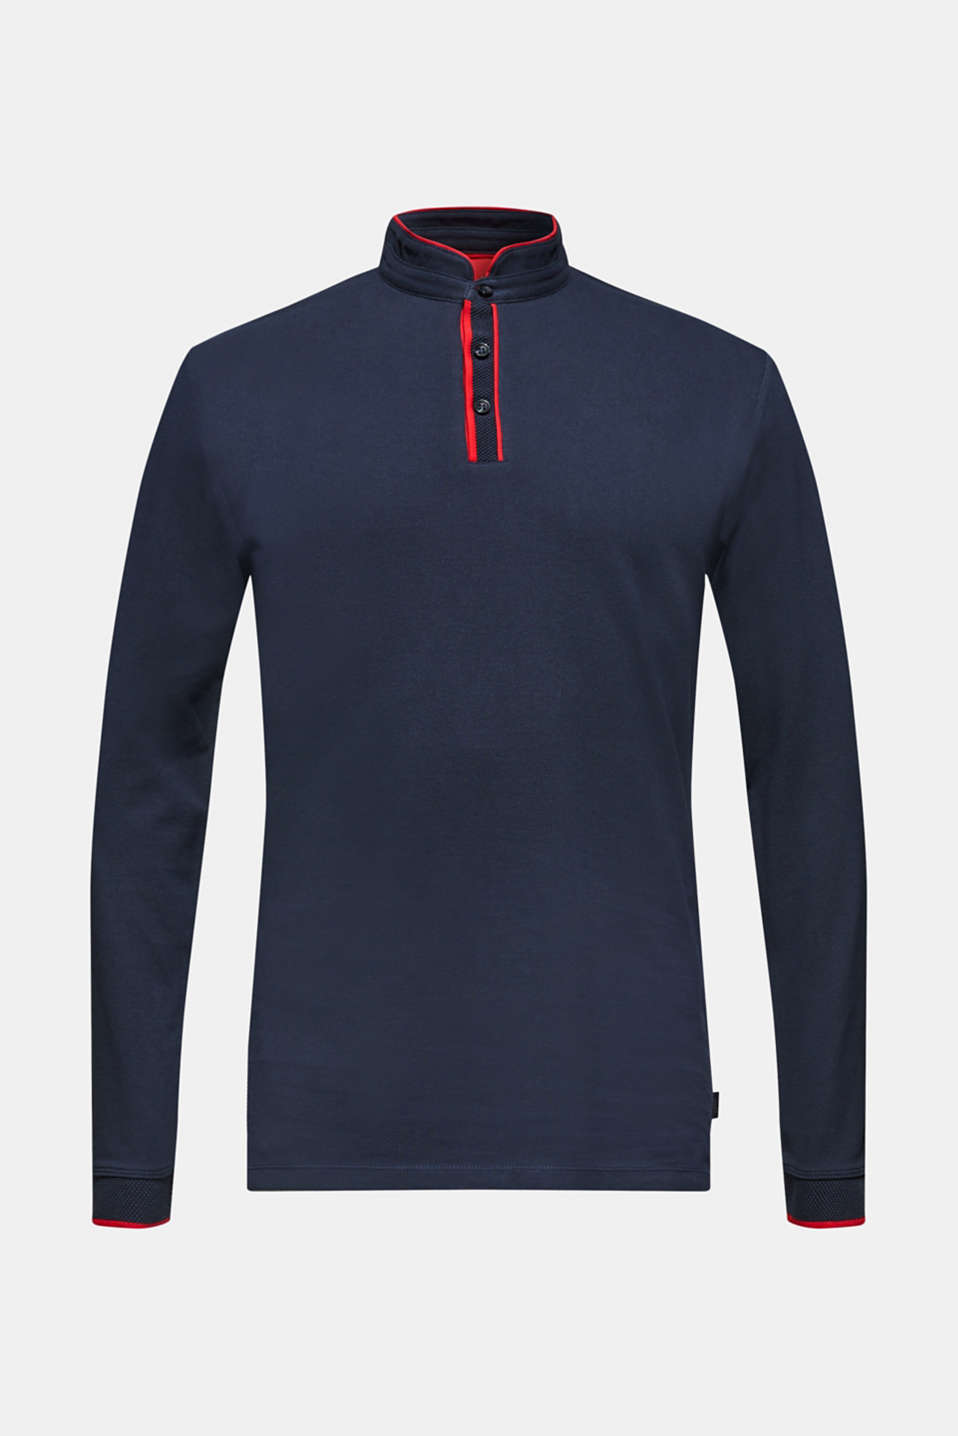 Piqué polo shirt in 100% cotton, NAVY, detail image number 7